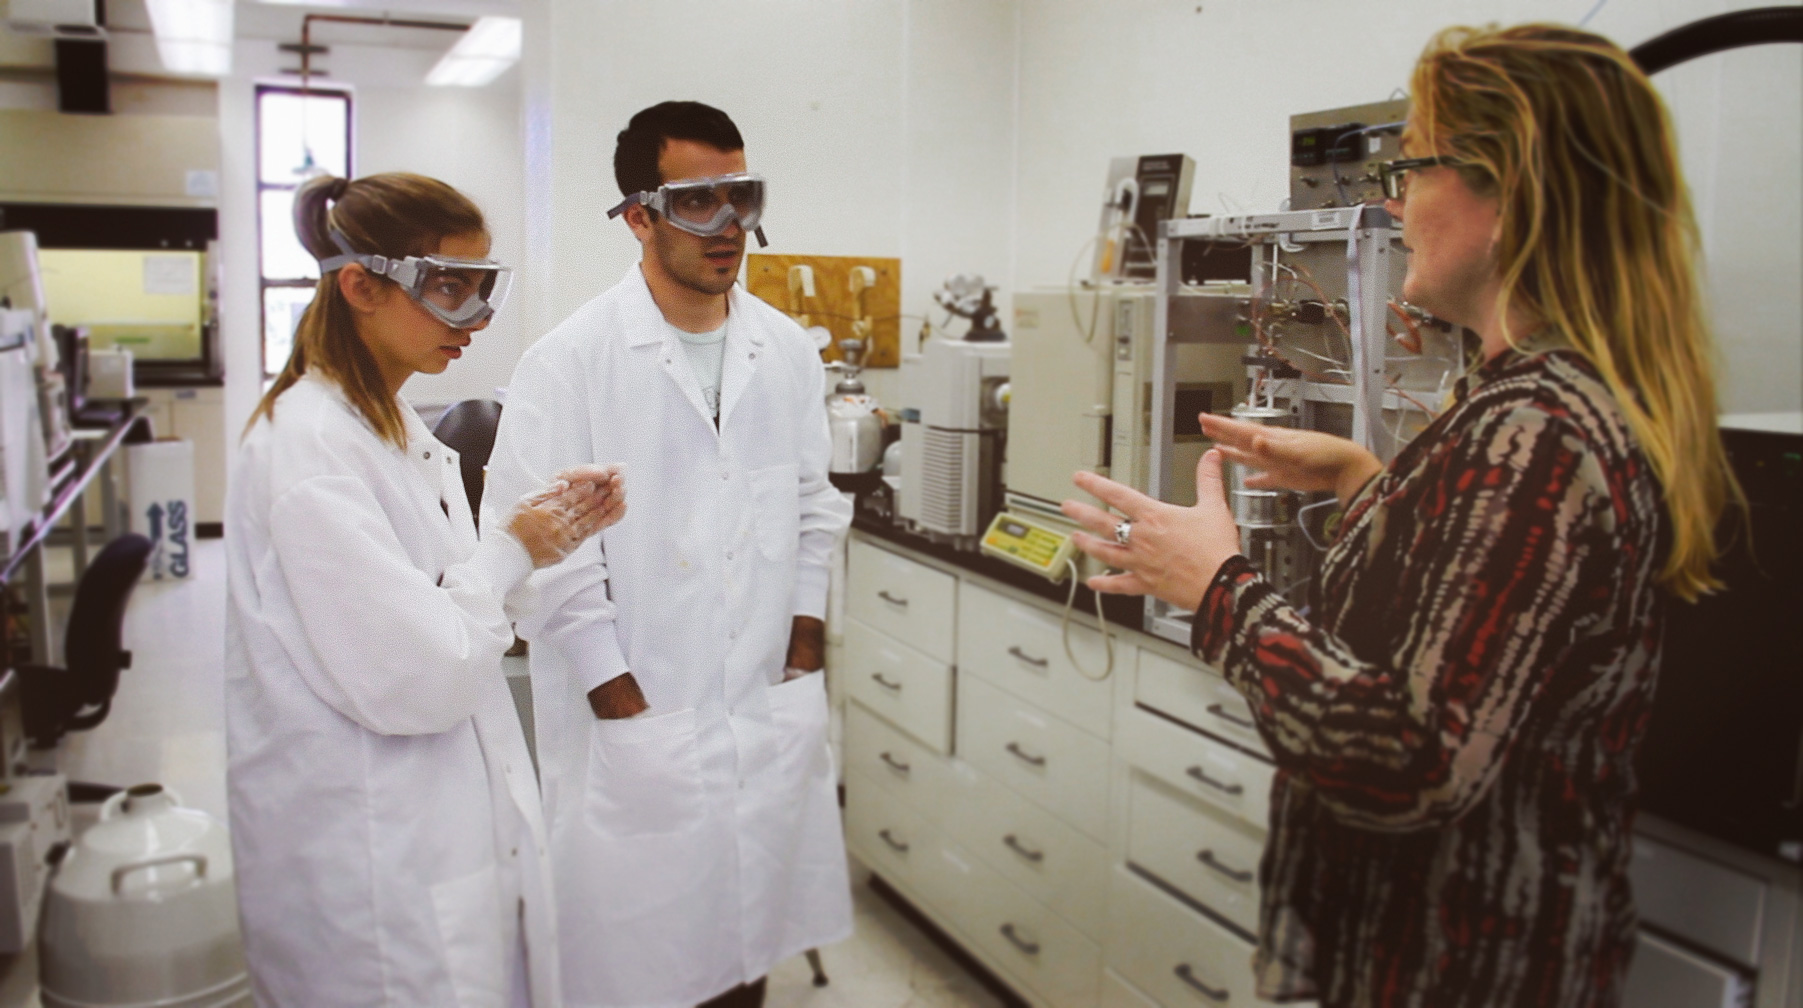 Two students in lab coats talking to a nicely-dressed woman